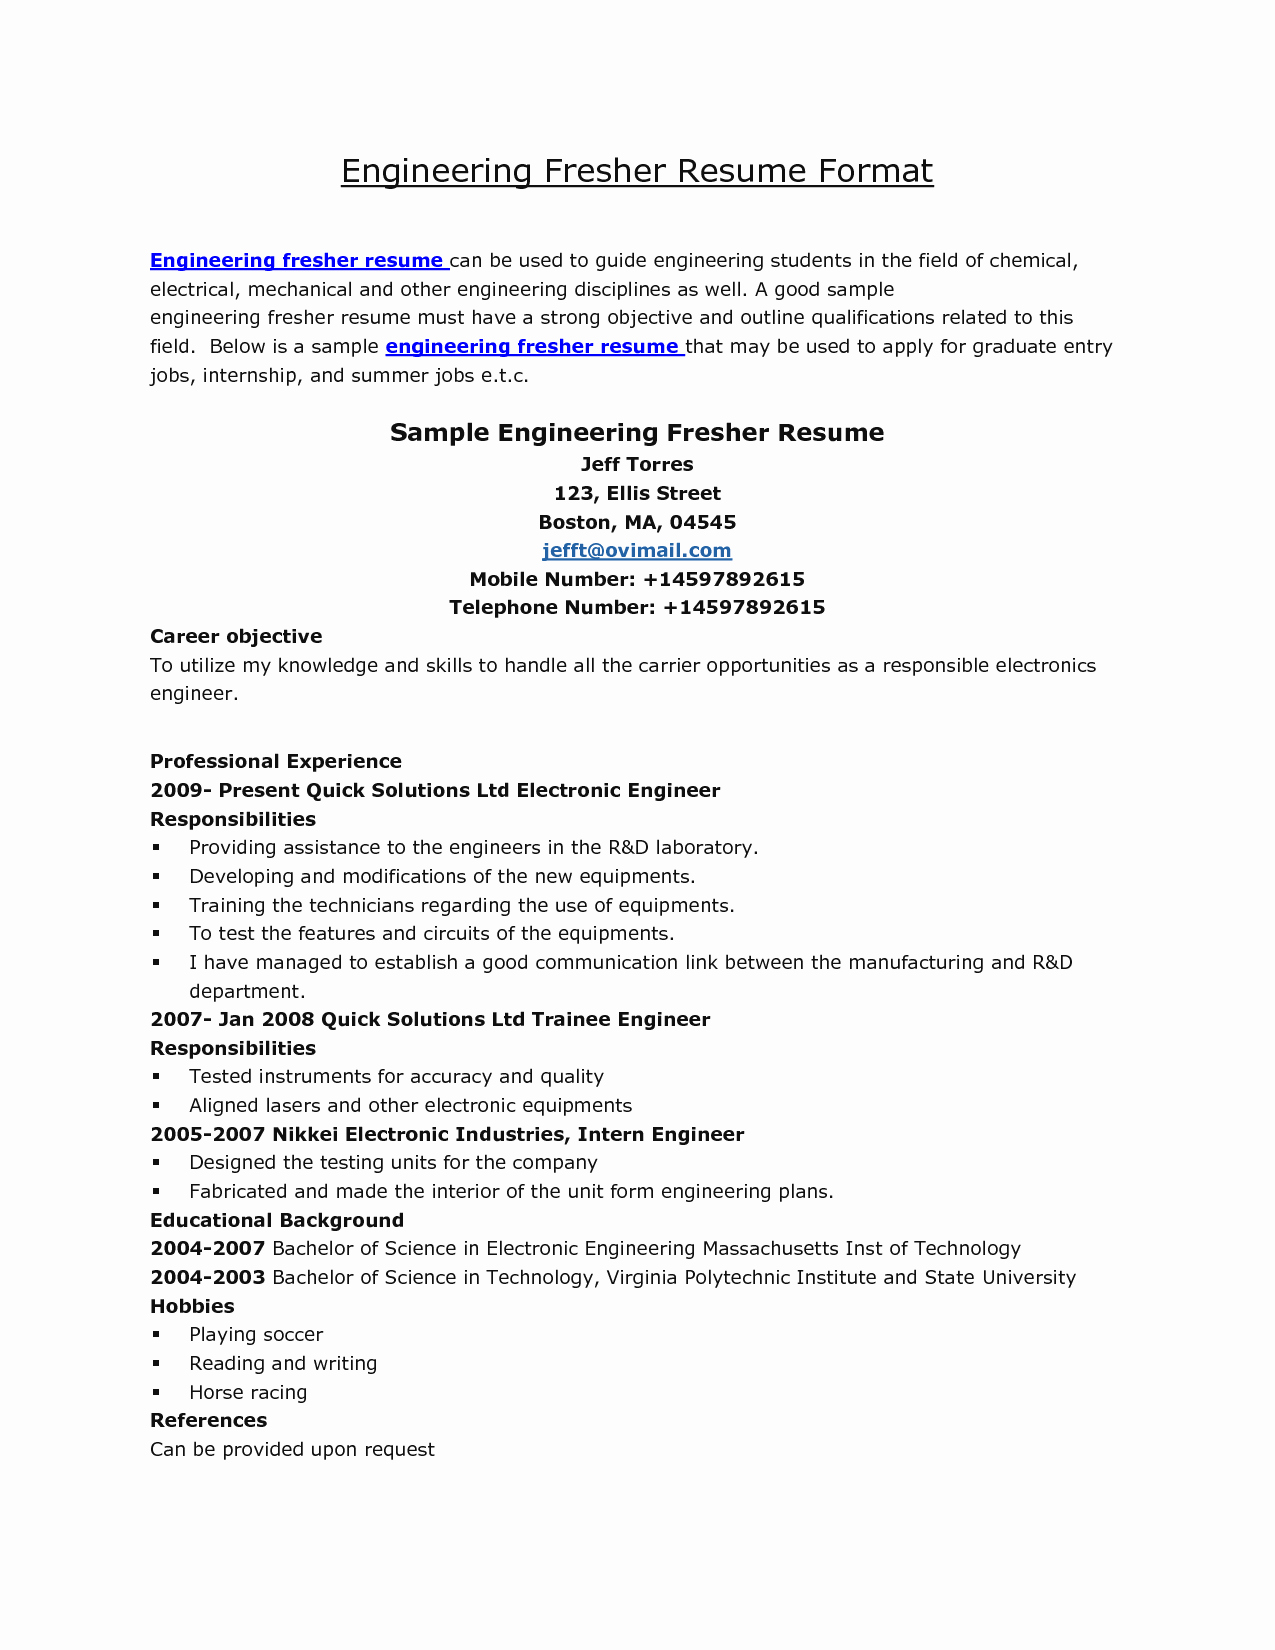 Best Resume format for Engineers Luxury Resume format for Engineering Students